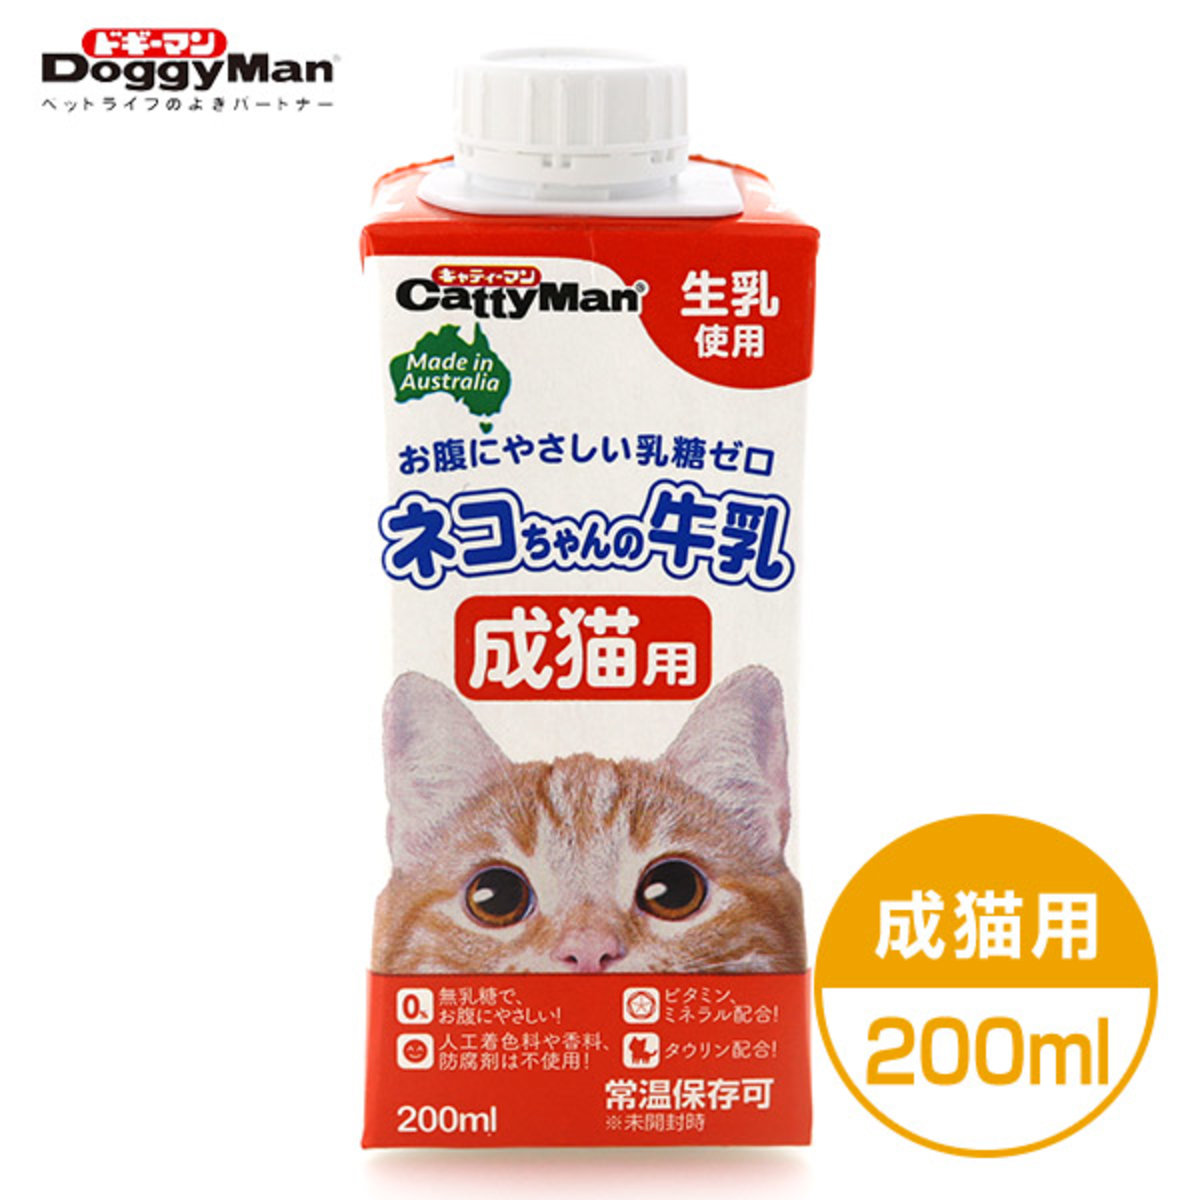 日本CattyMan-Australia Milk for cat 200ml-(Adult cat use)